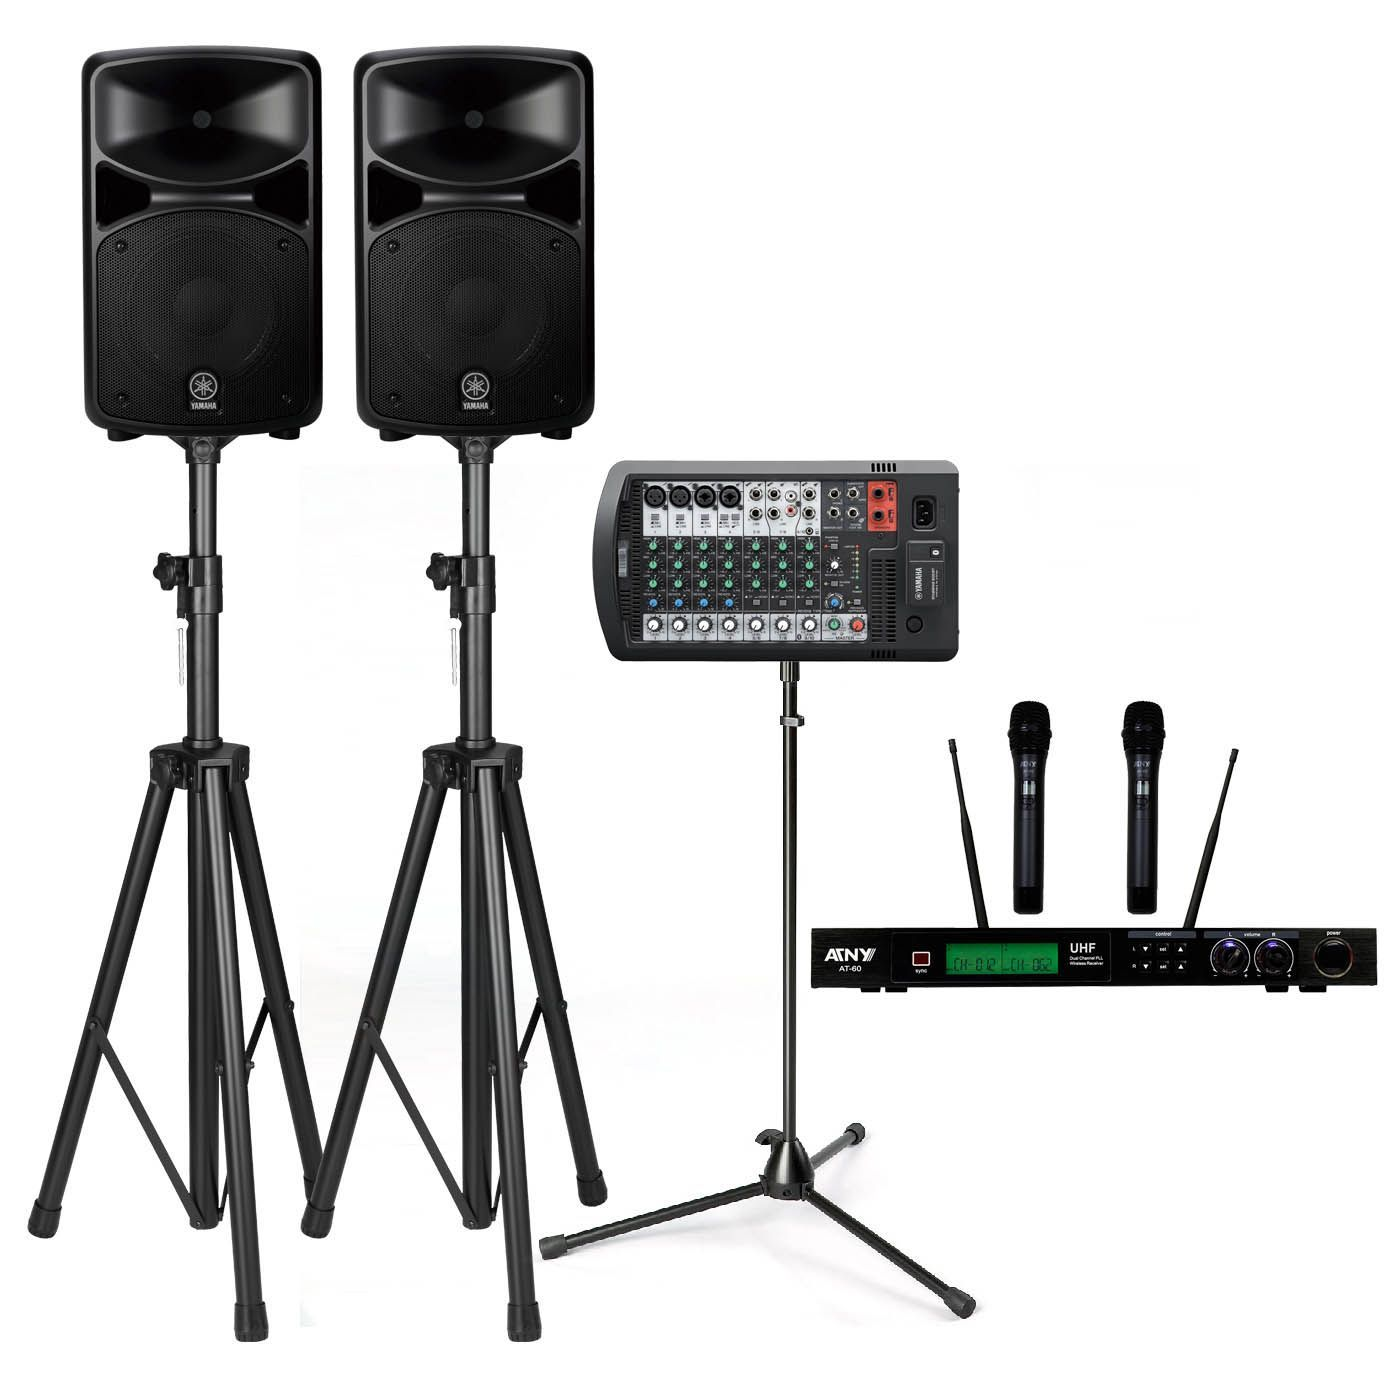 yamaha stagepas 600bt 680w pa system with stands atny at. Black Bedroom Furniture Sets. Home Design Ideas